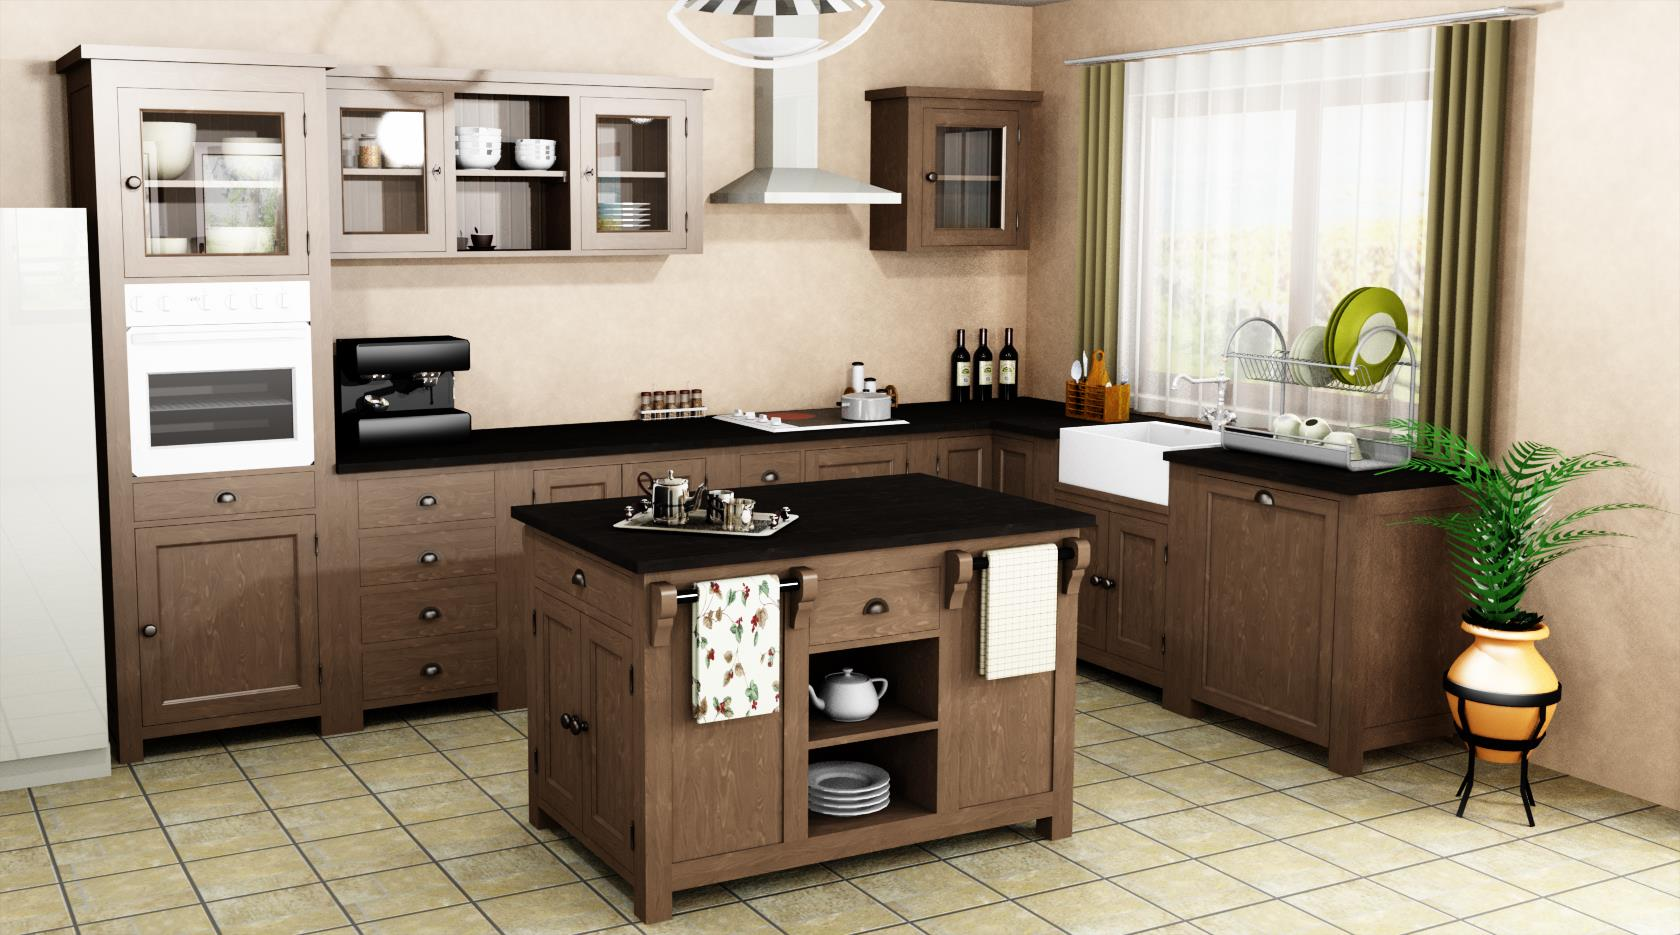 projet cuisine 3d great plan de cuisine d beautiful plan. Black Bedroom Furniture Sets. Home Design Ideas